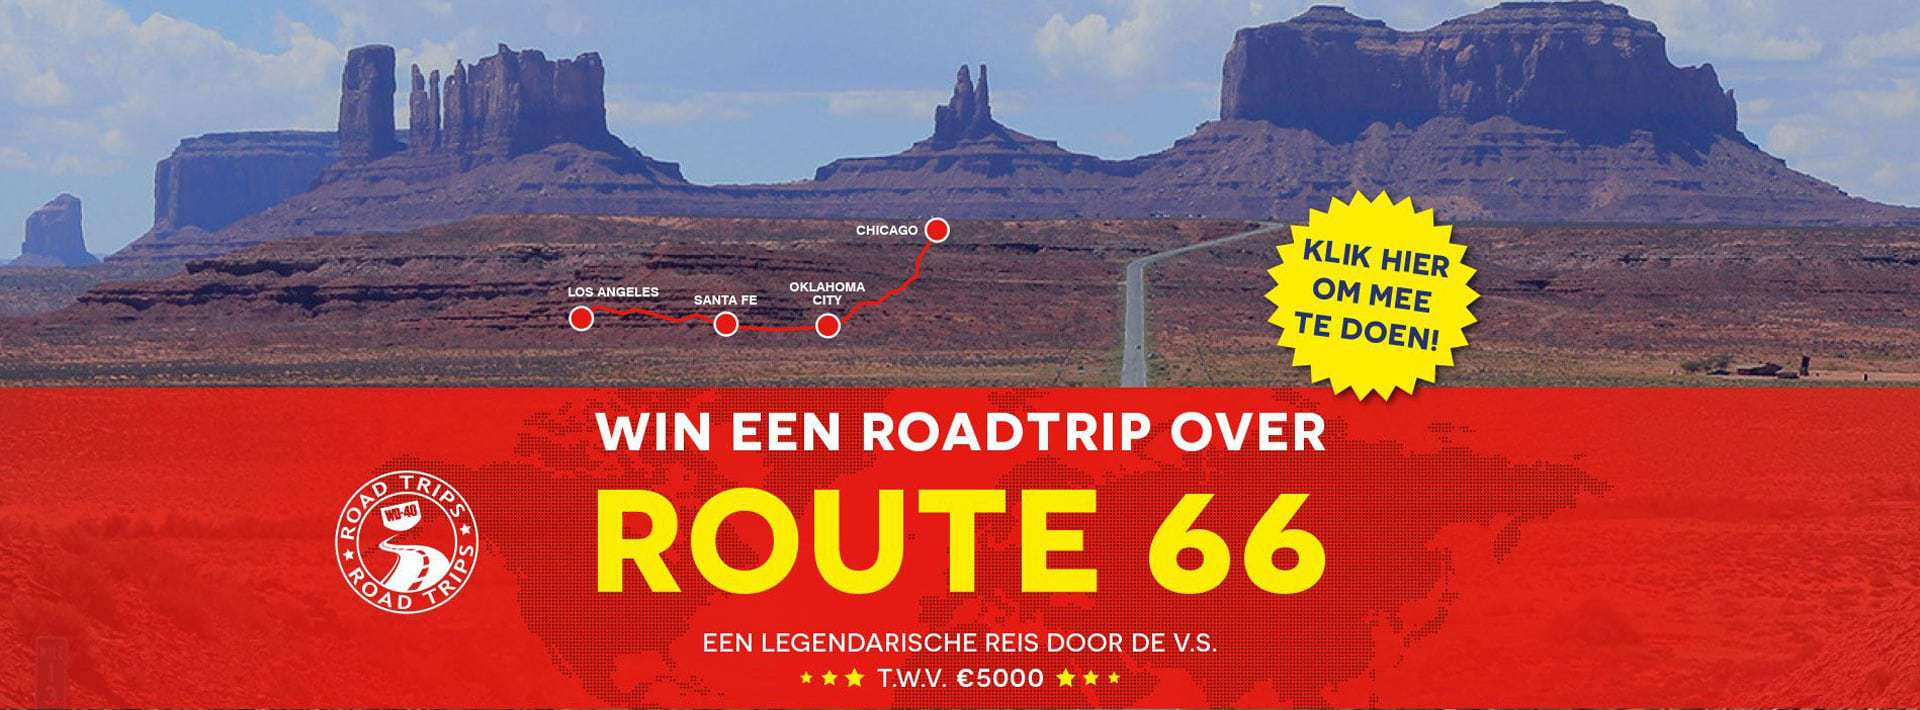 banner route66 1920x710